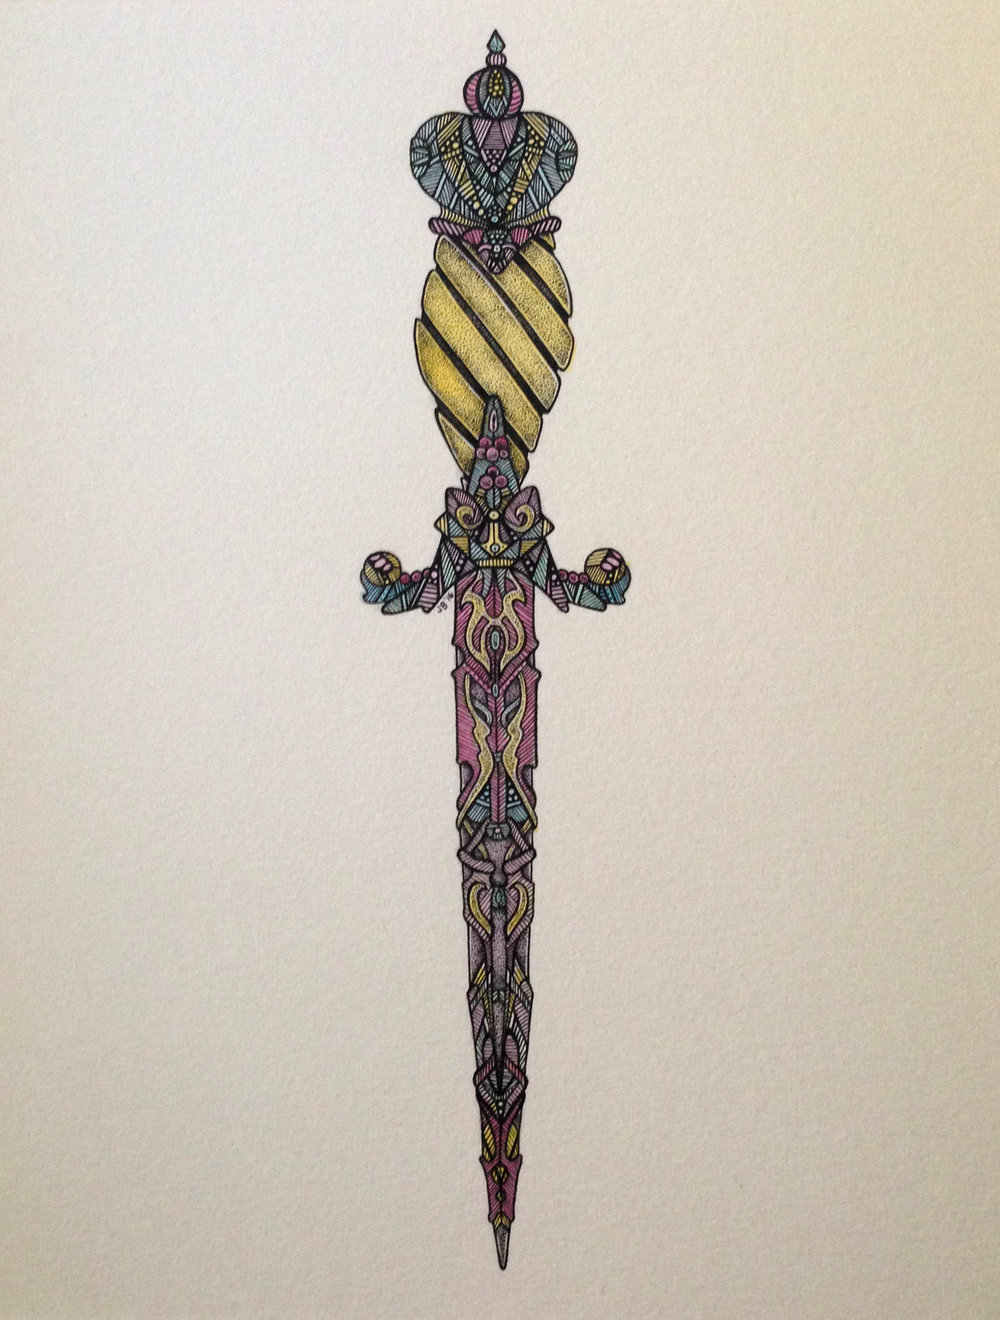 Justine Briggs – Ritual Knife I – Ink & Watercolor on Paper – 15 x 13 inches - $250